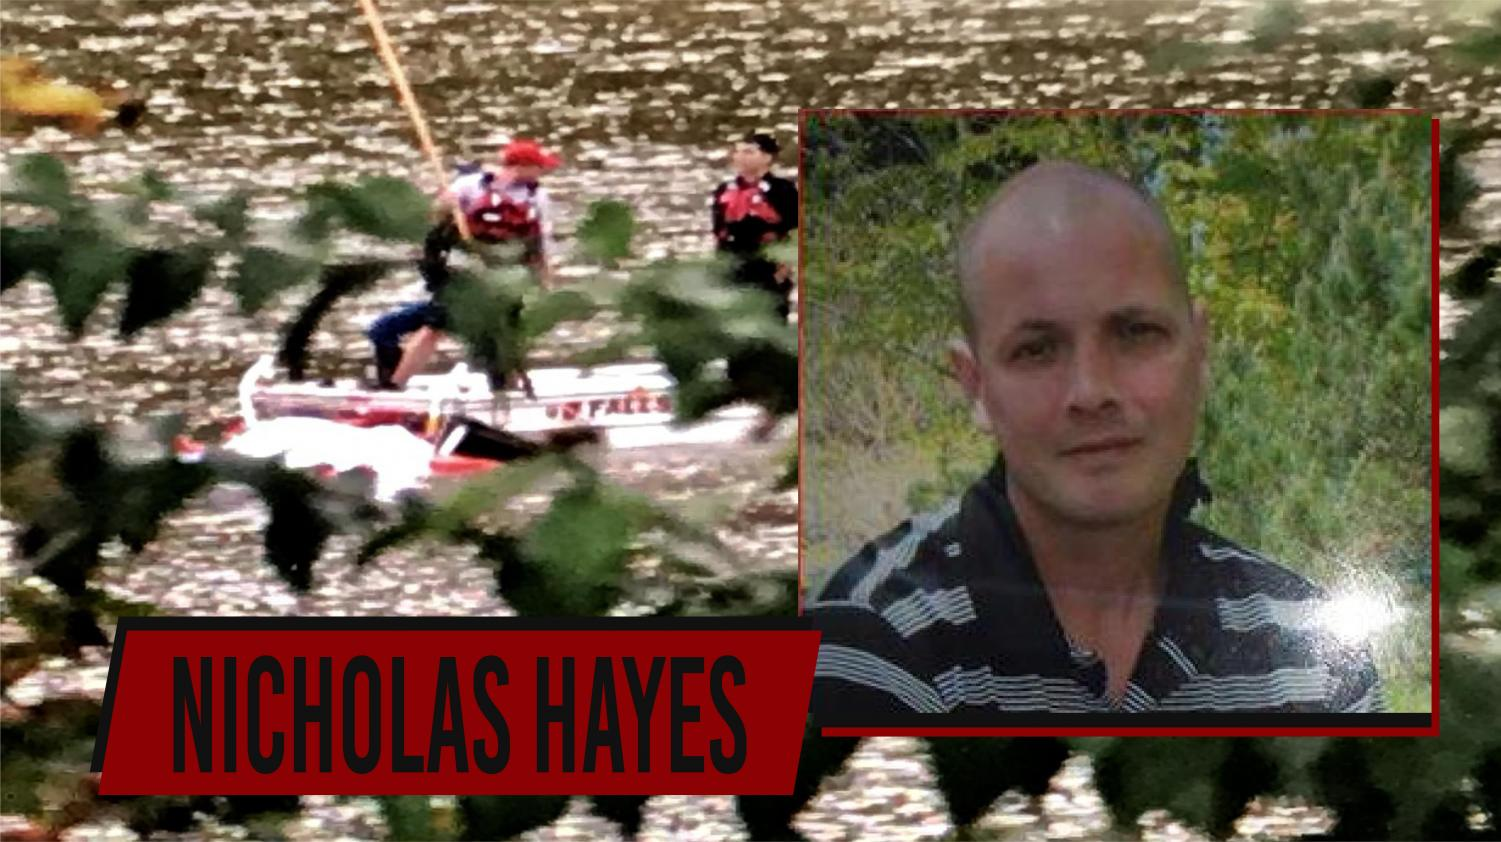 Nicholas Hayes was reported missing on Oct. 9.